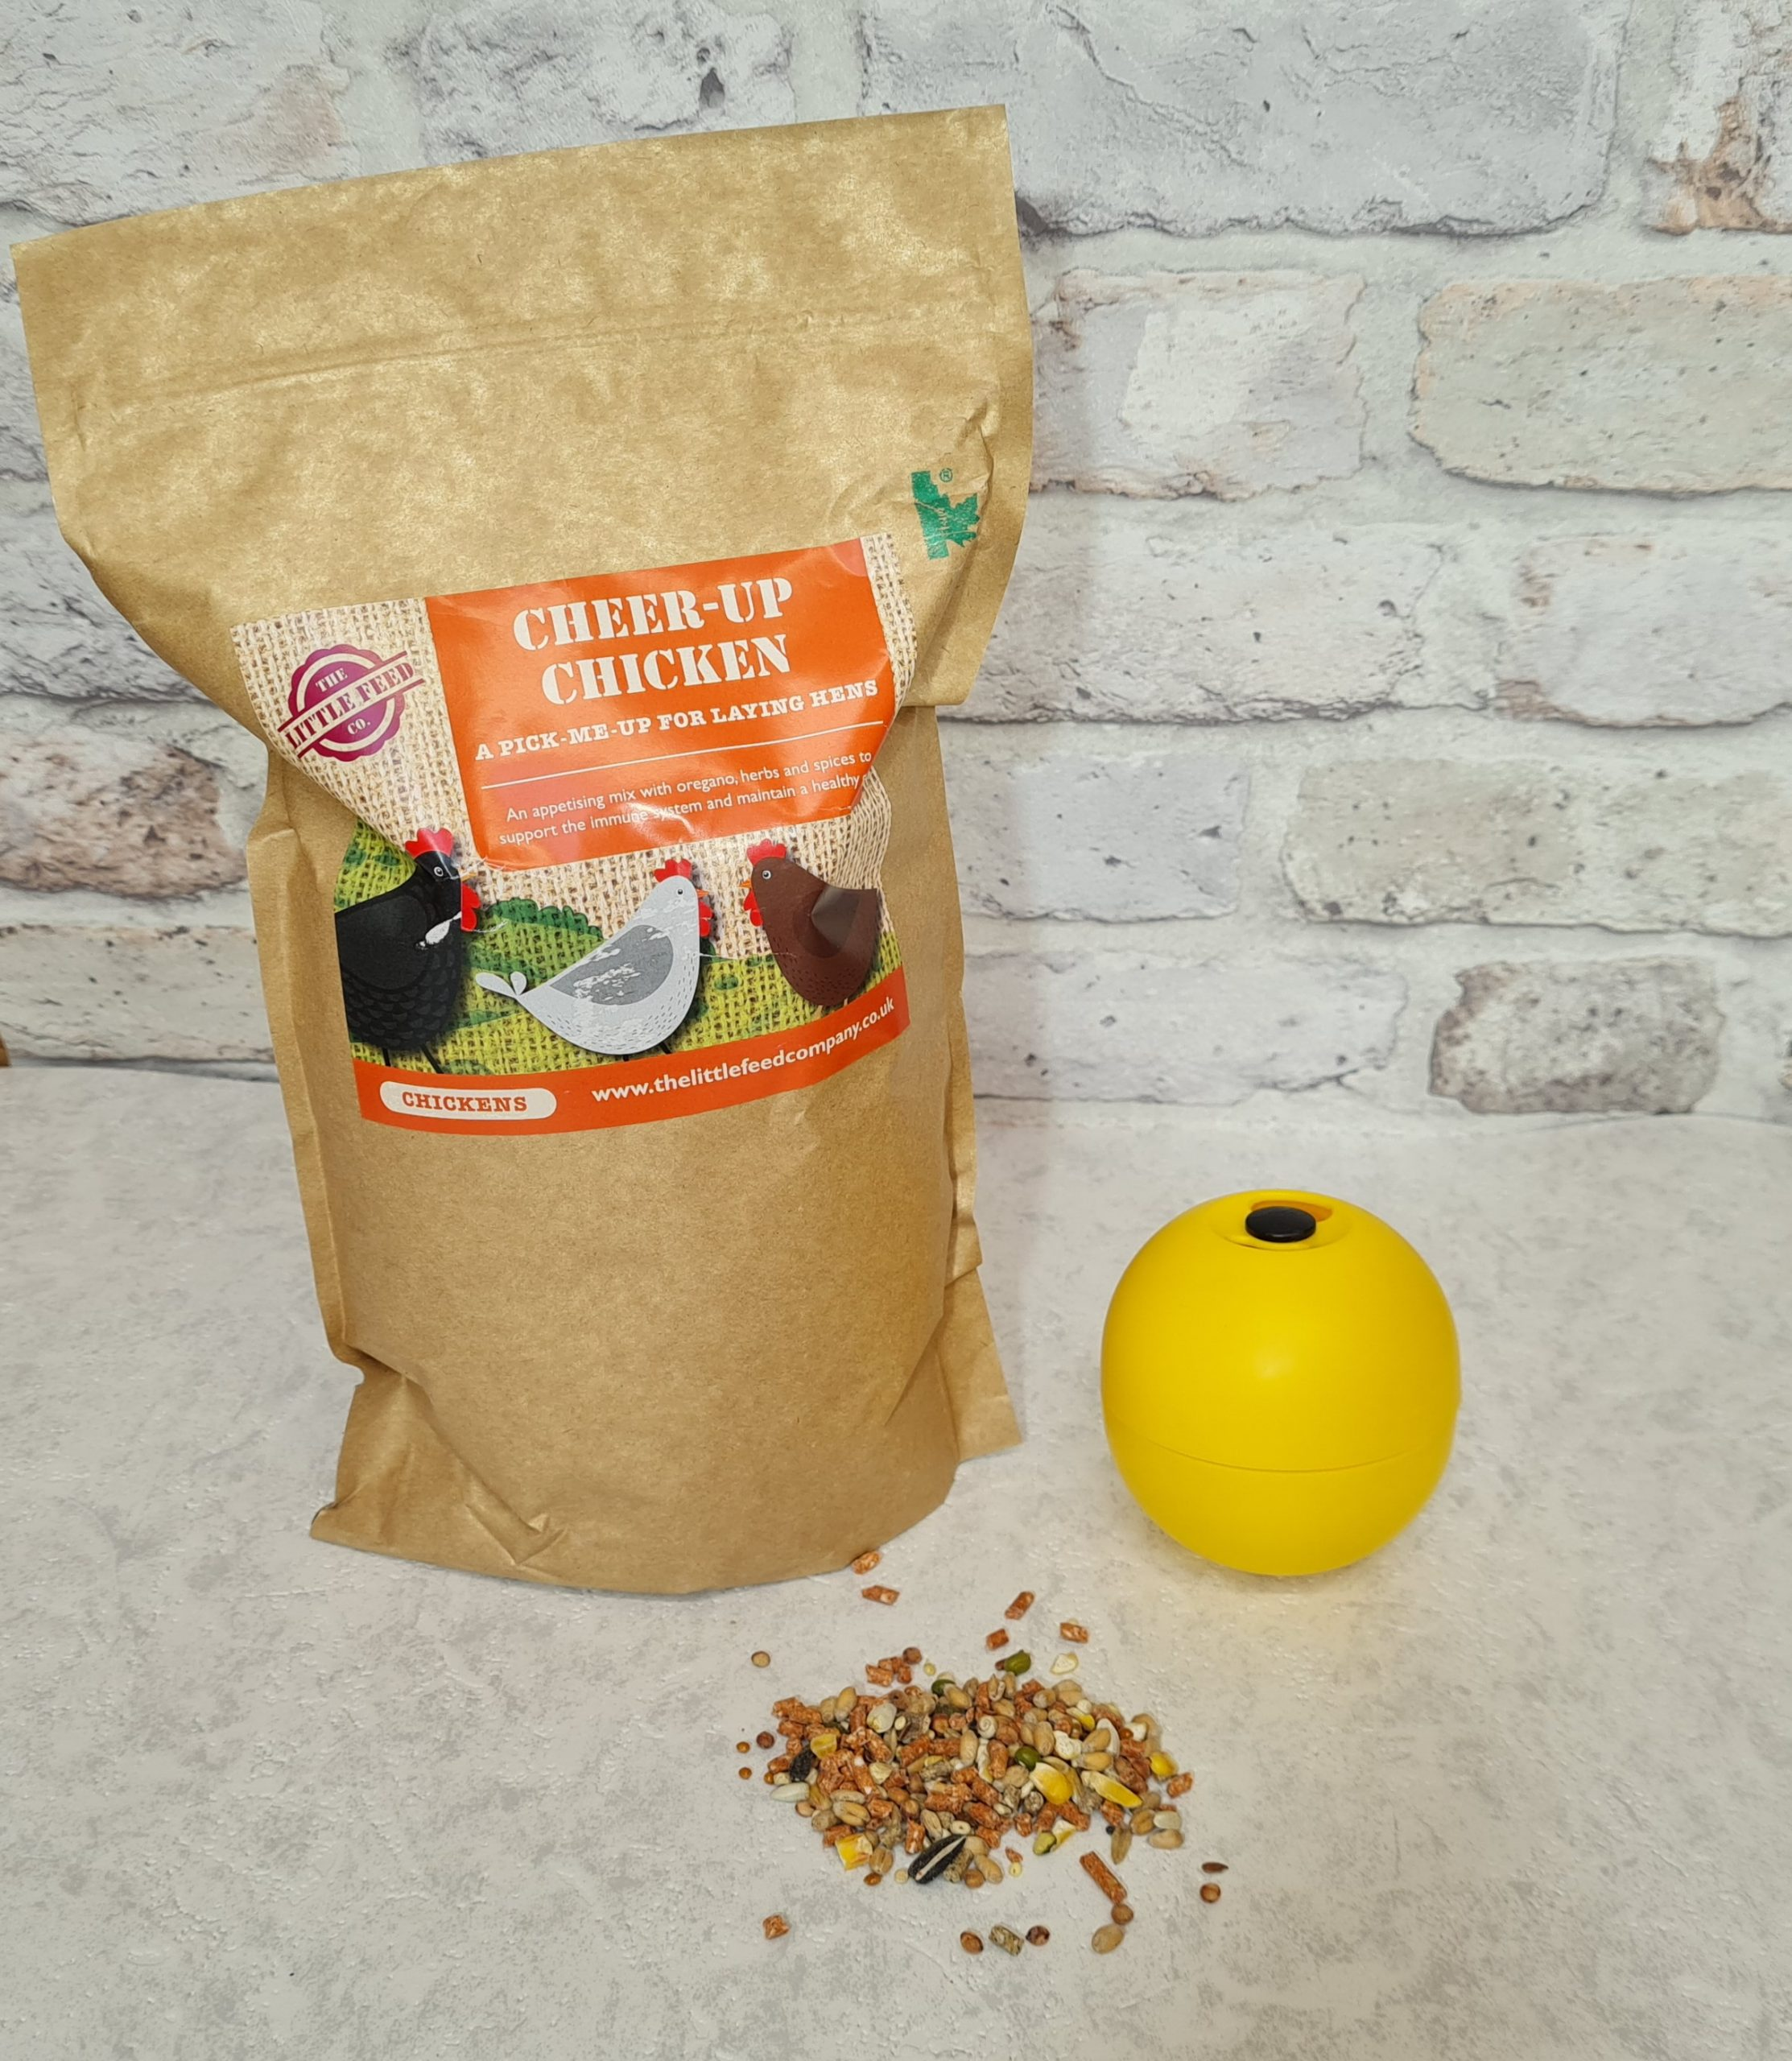 Cheer up chicken, little feed company, chicken enrichment, treats for chickens,